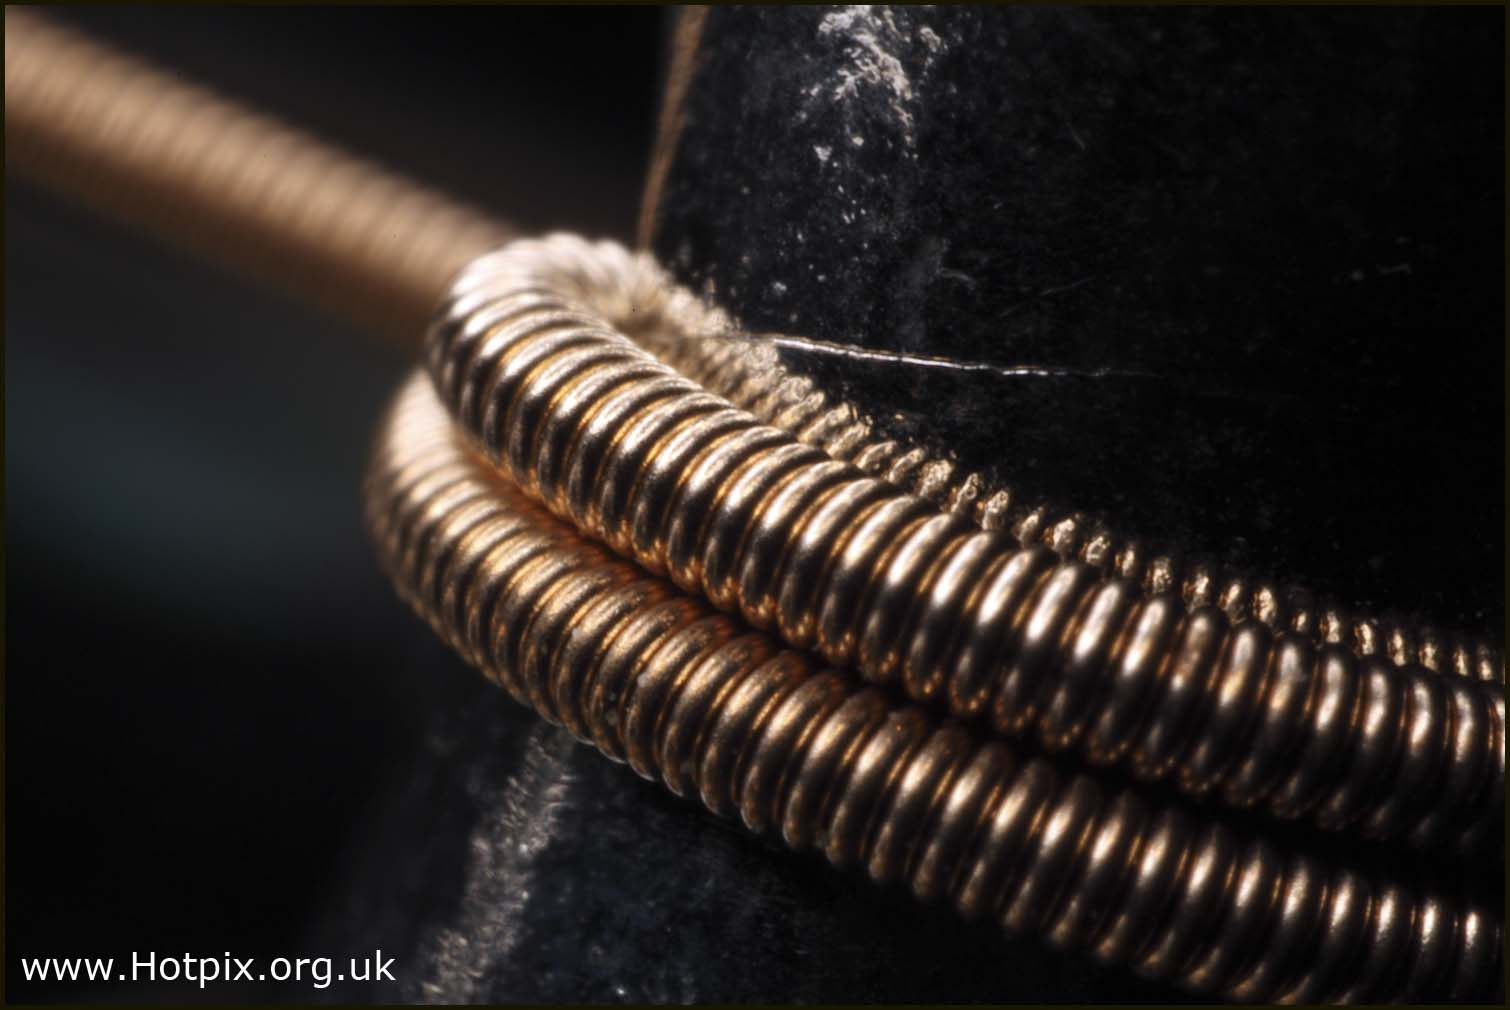 extreme,macro,guitar,string,gold,tuning,metal,coils,coiled,20mm,OM,olympus,close,up,closer,this photo rocks,extrememacro,stillife,stilllife,still,life,abstract,hotpix!